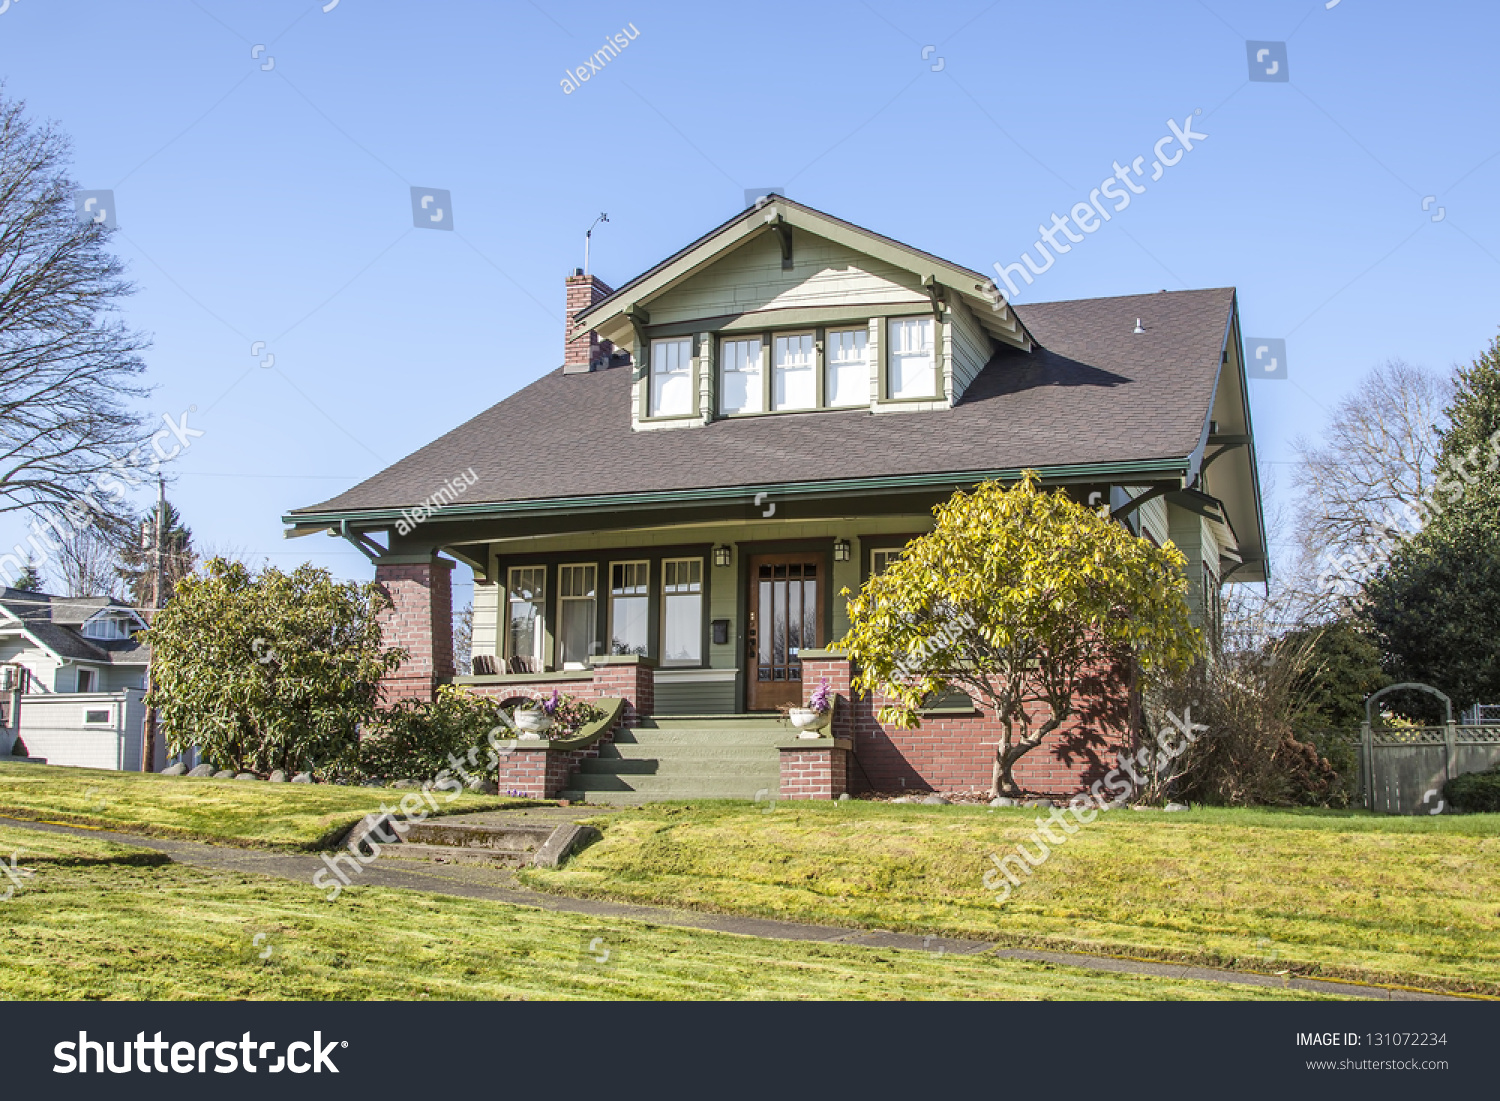 Old american suburban house stock photo 131072234 for Old american houses